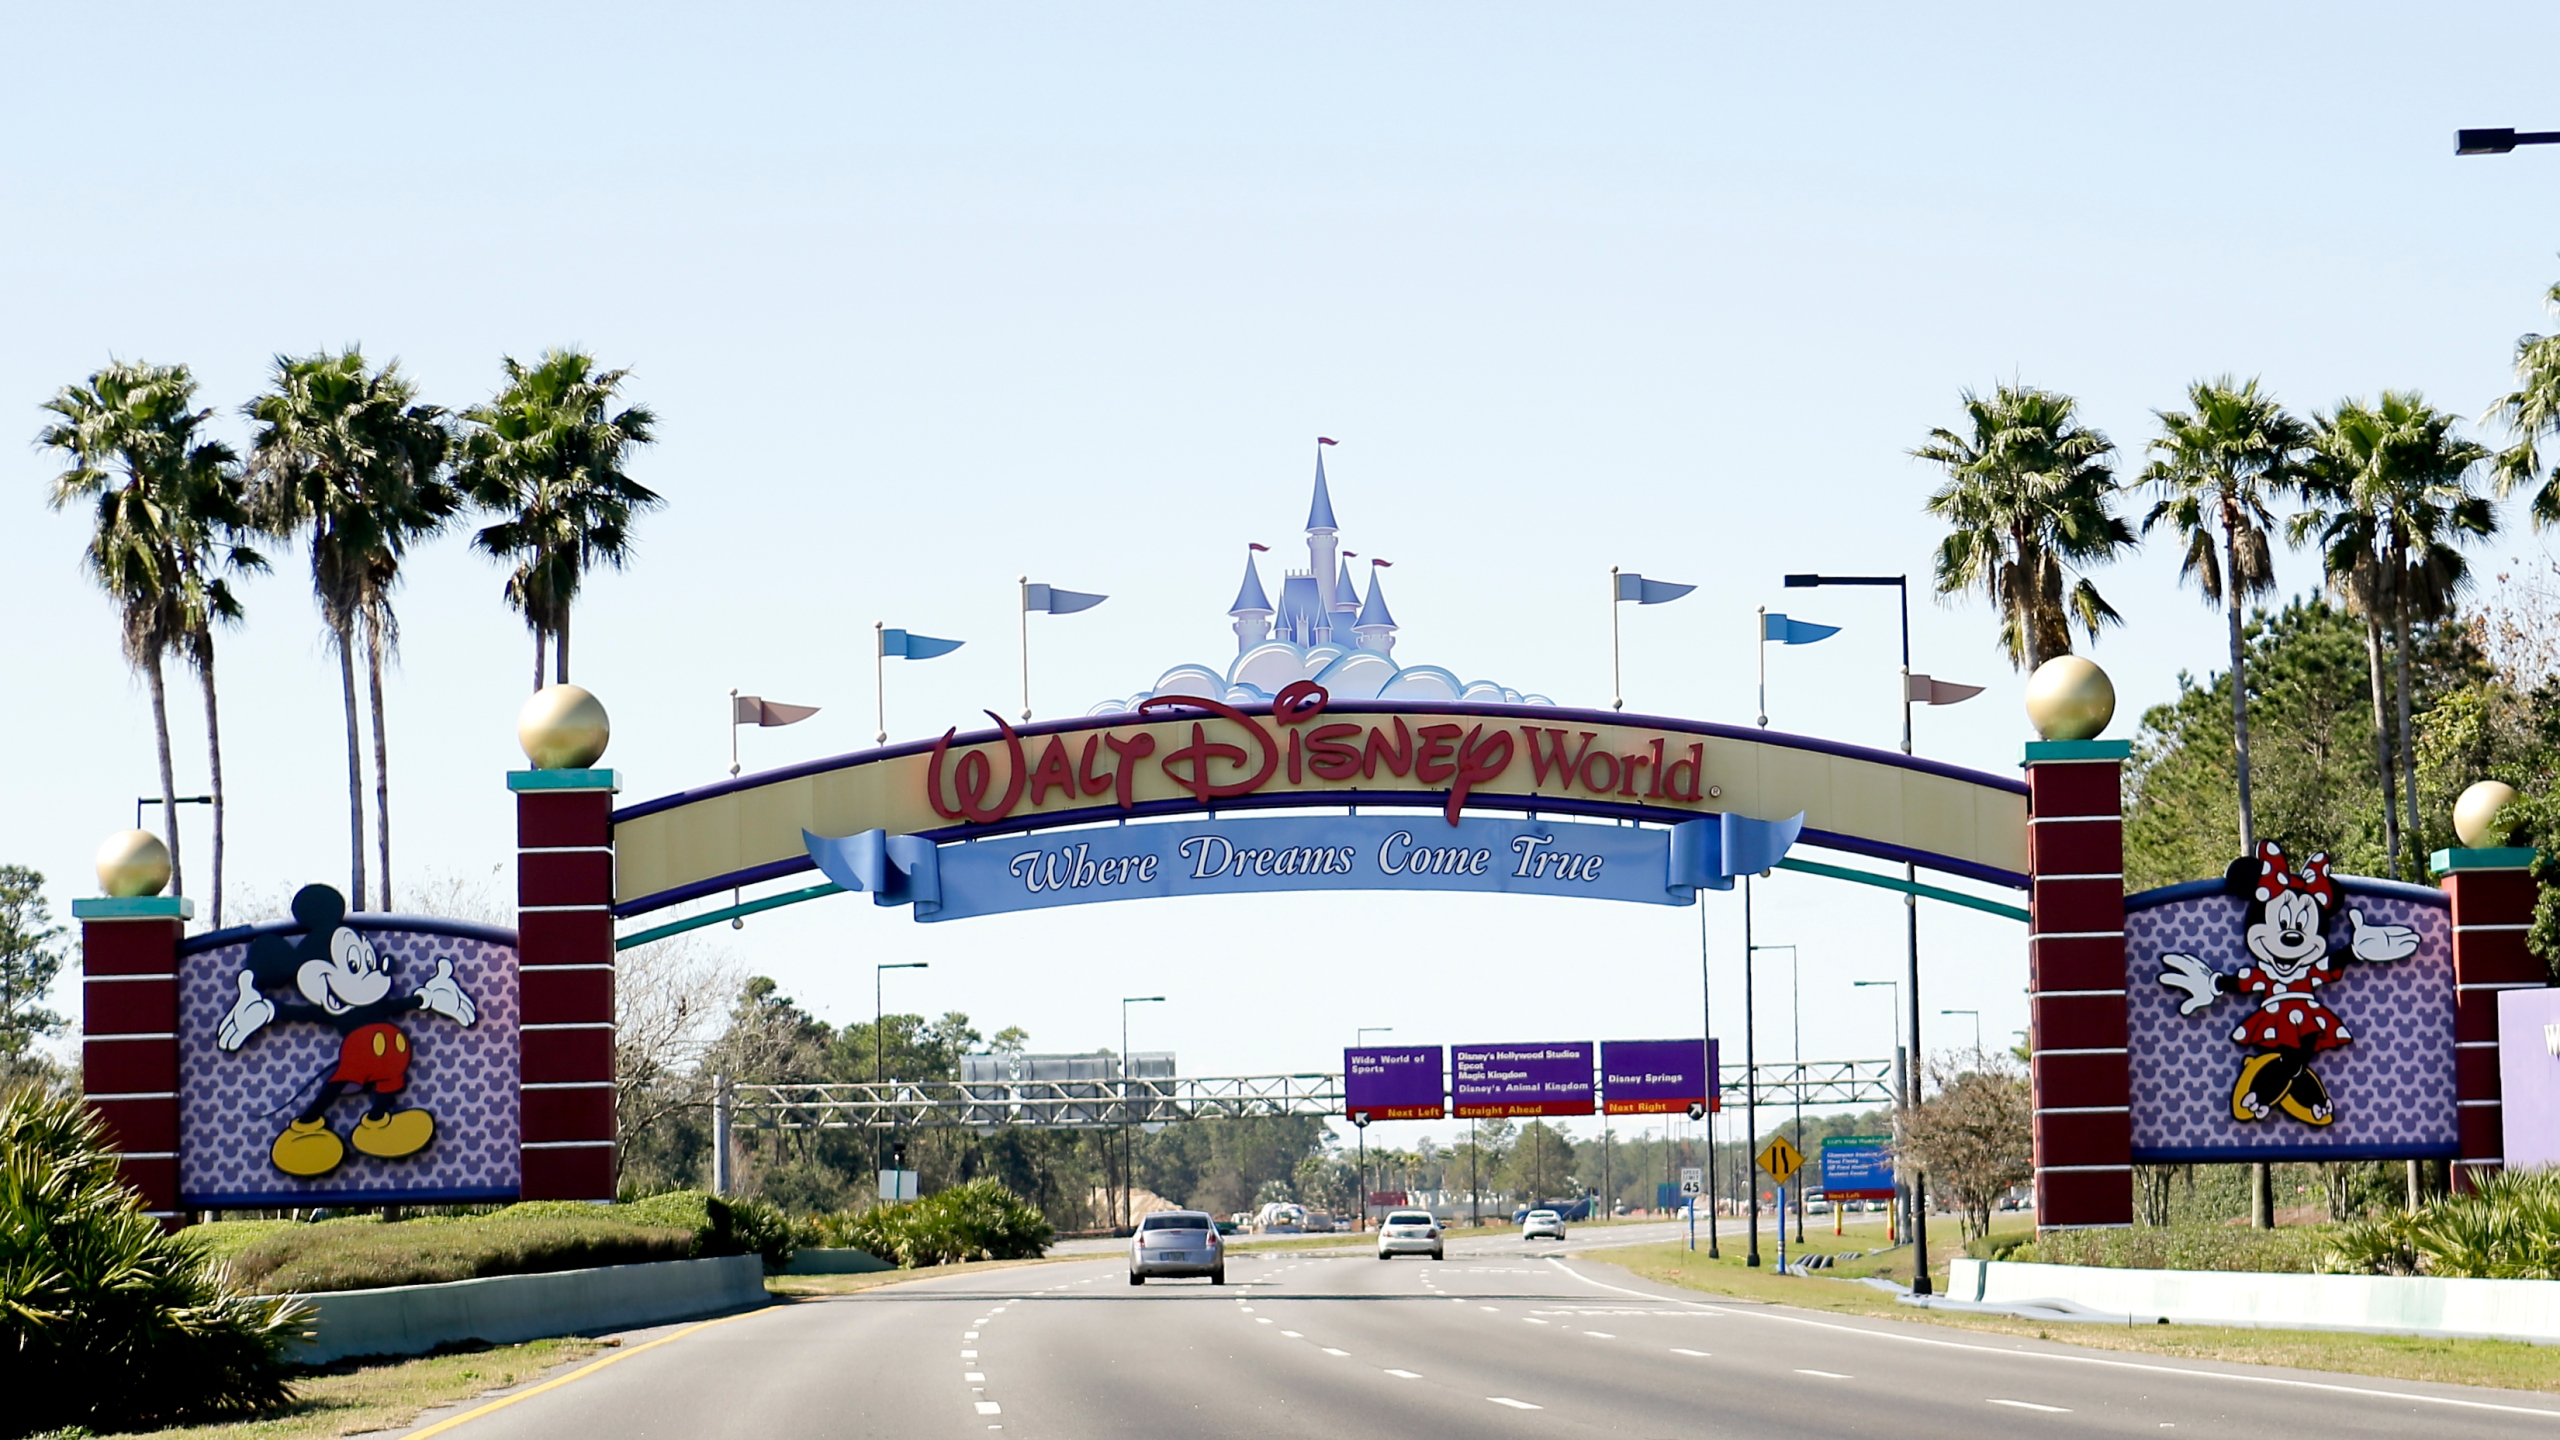 Disney_Lyft_Drivers_Union_22328-159532.jpg71124034